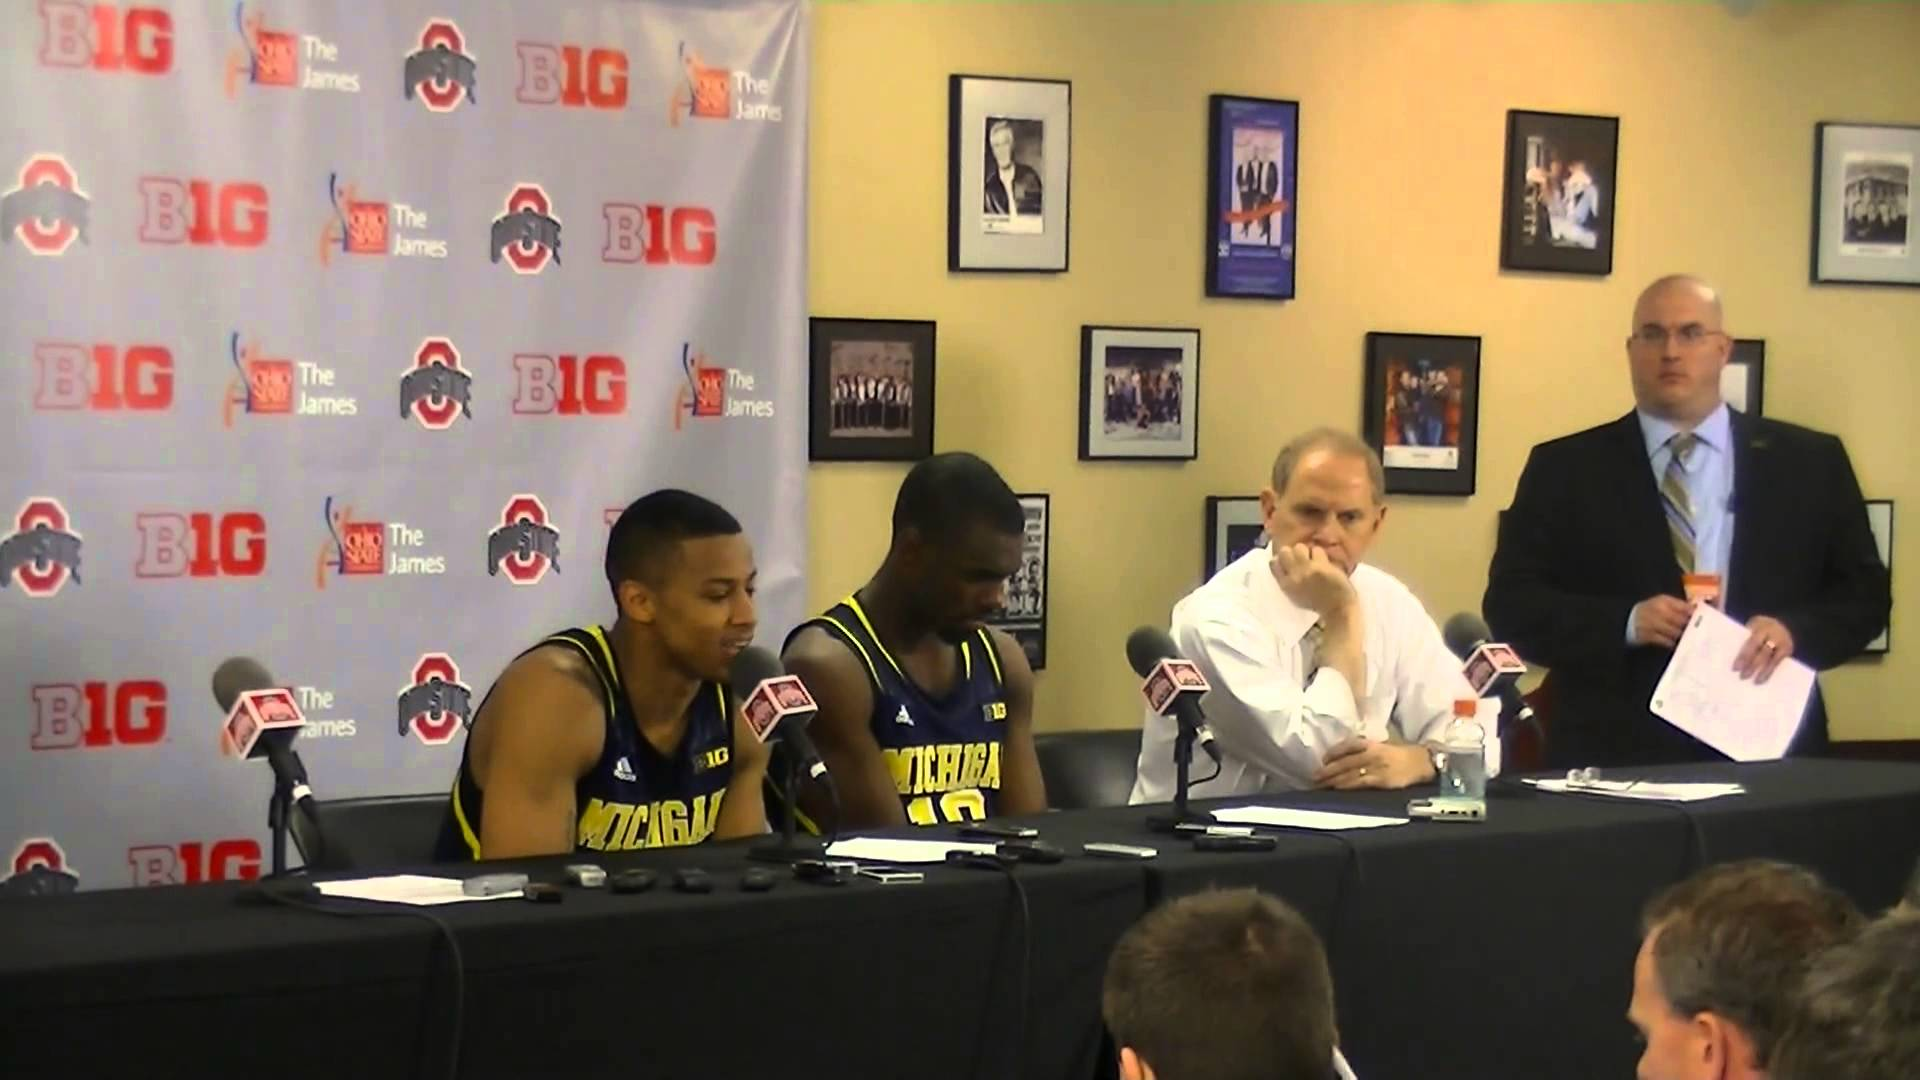 Video: Trey Burke and Tim Hardaway Jr. react to Ohio State loss